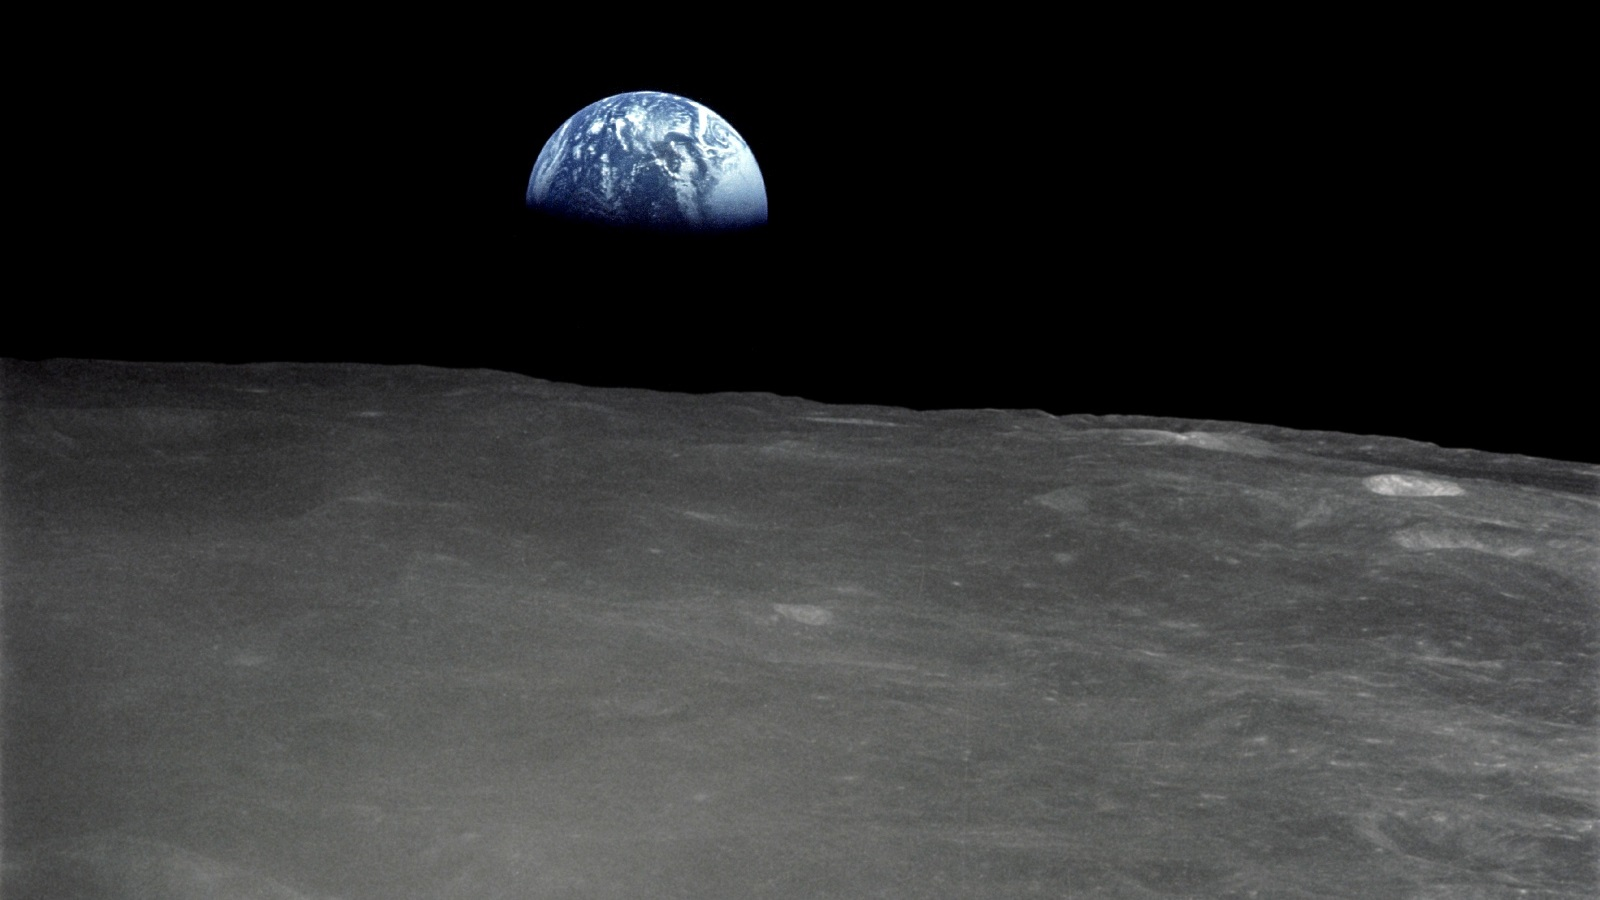 ?image=Manzara/Earth-Rise Above The Moon-Surface (1600).jpg